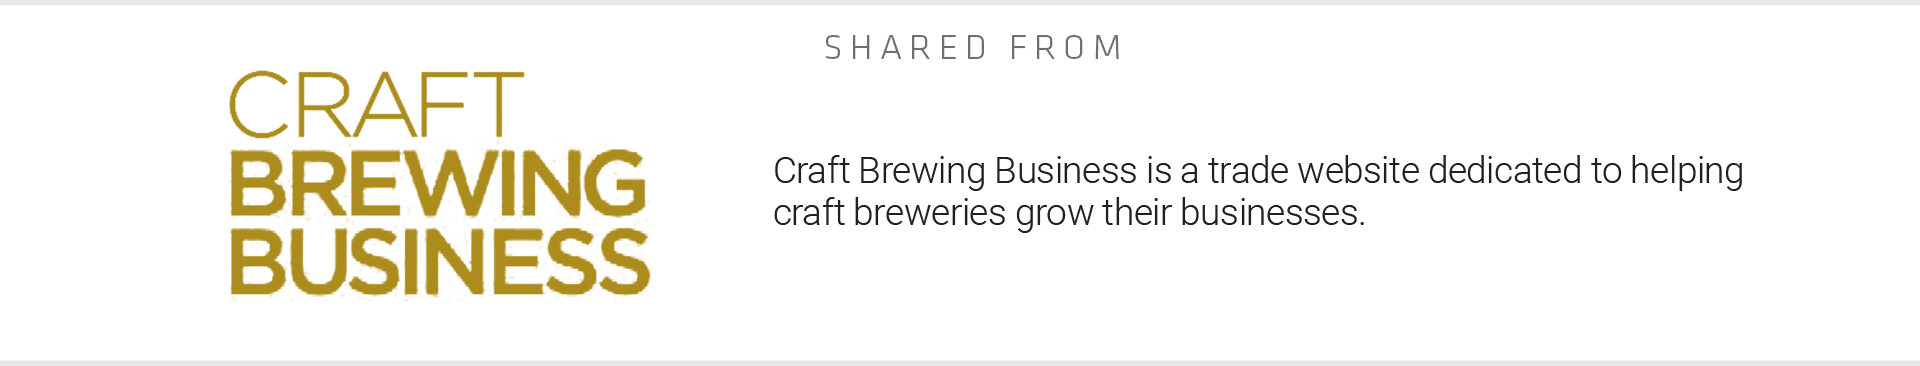 craft-brewing-business-spacer